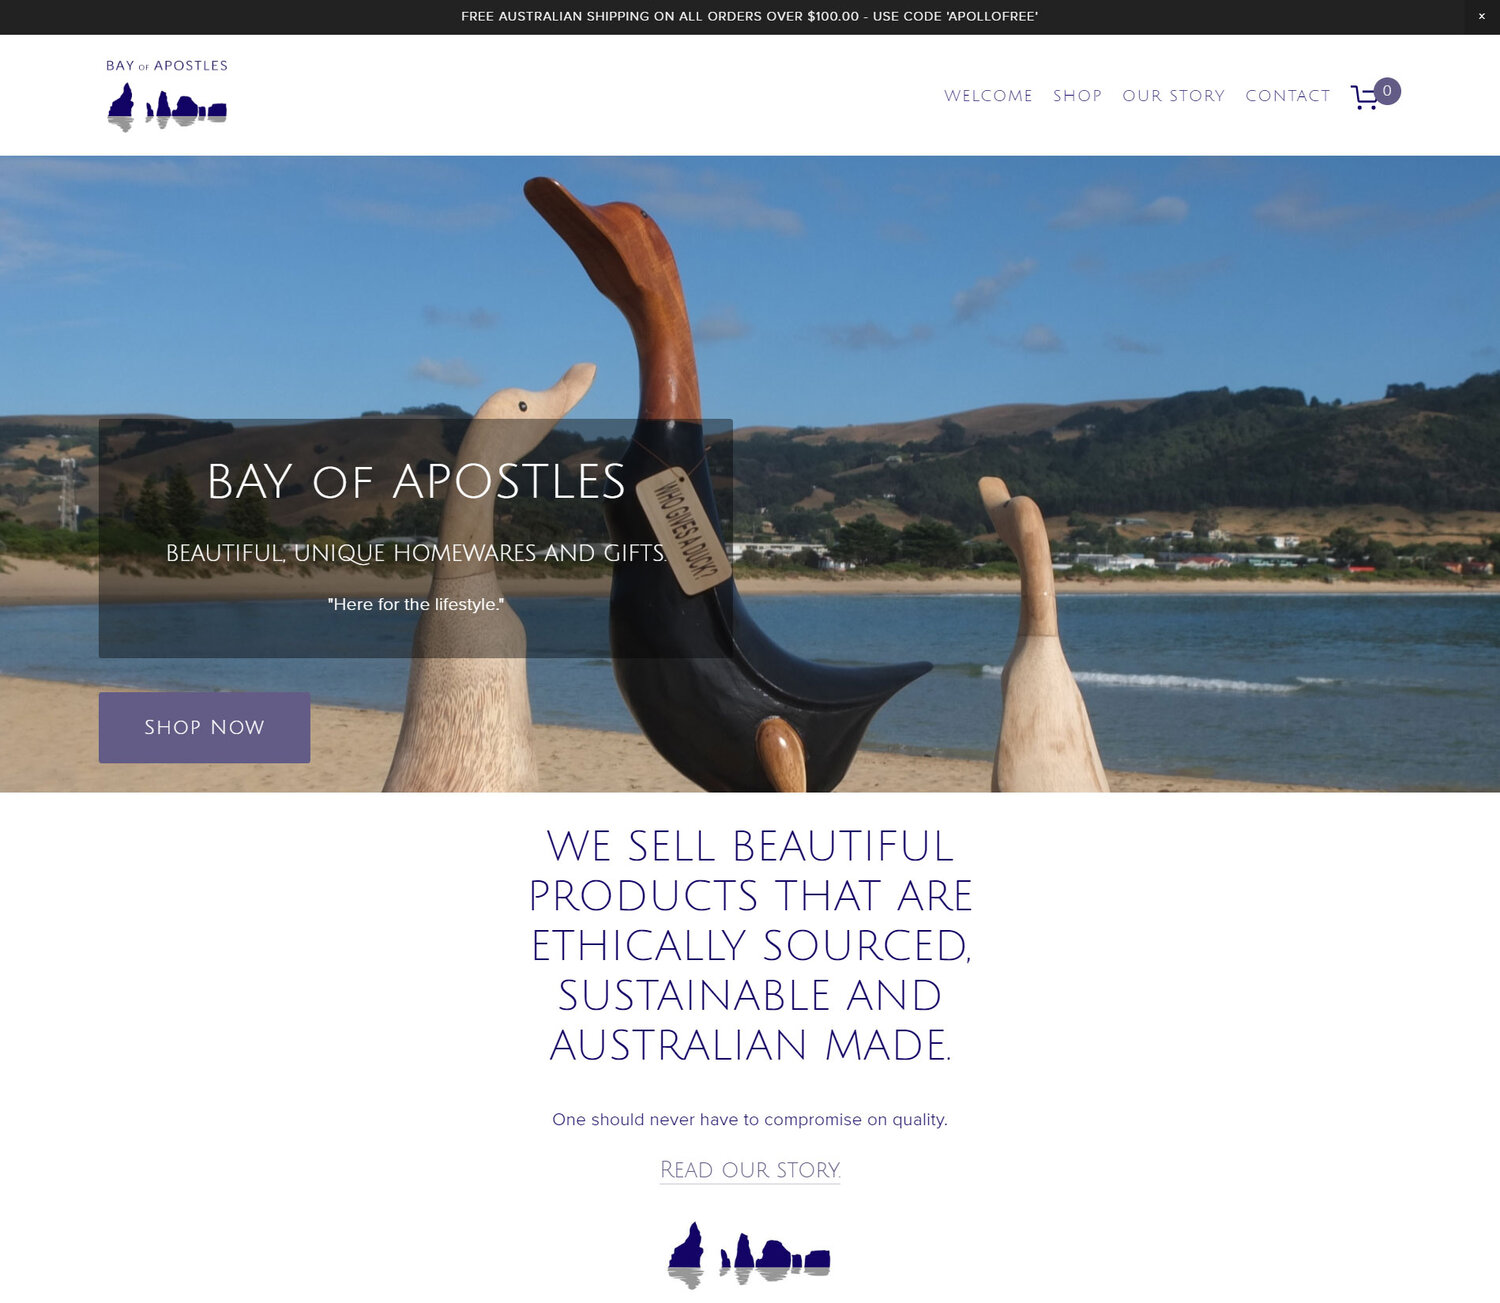 Bay of Apostles - Home Page